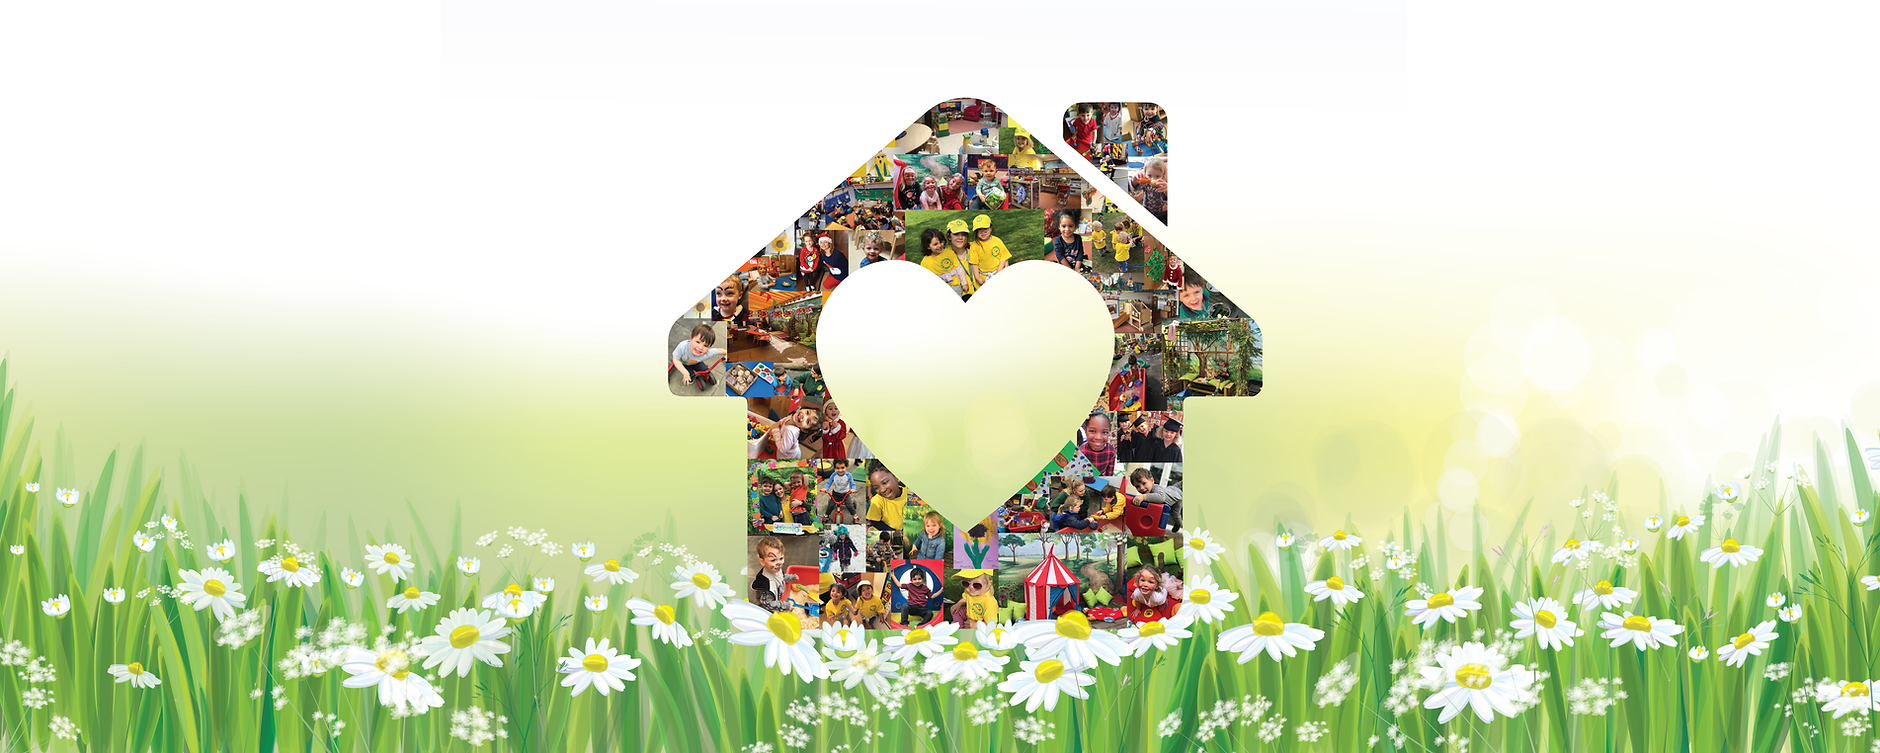 HOME IMAGE HOUSE AND FLOWERS-01.png